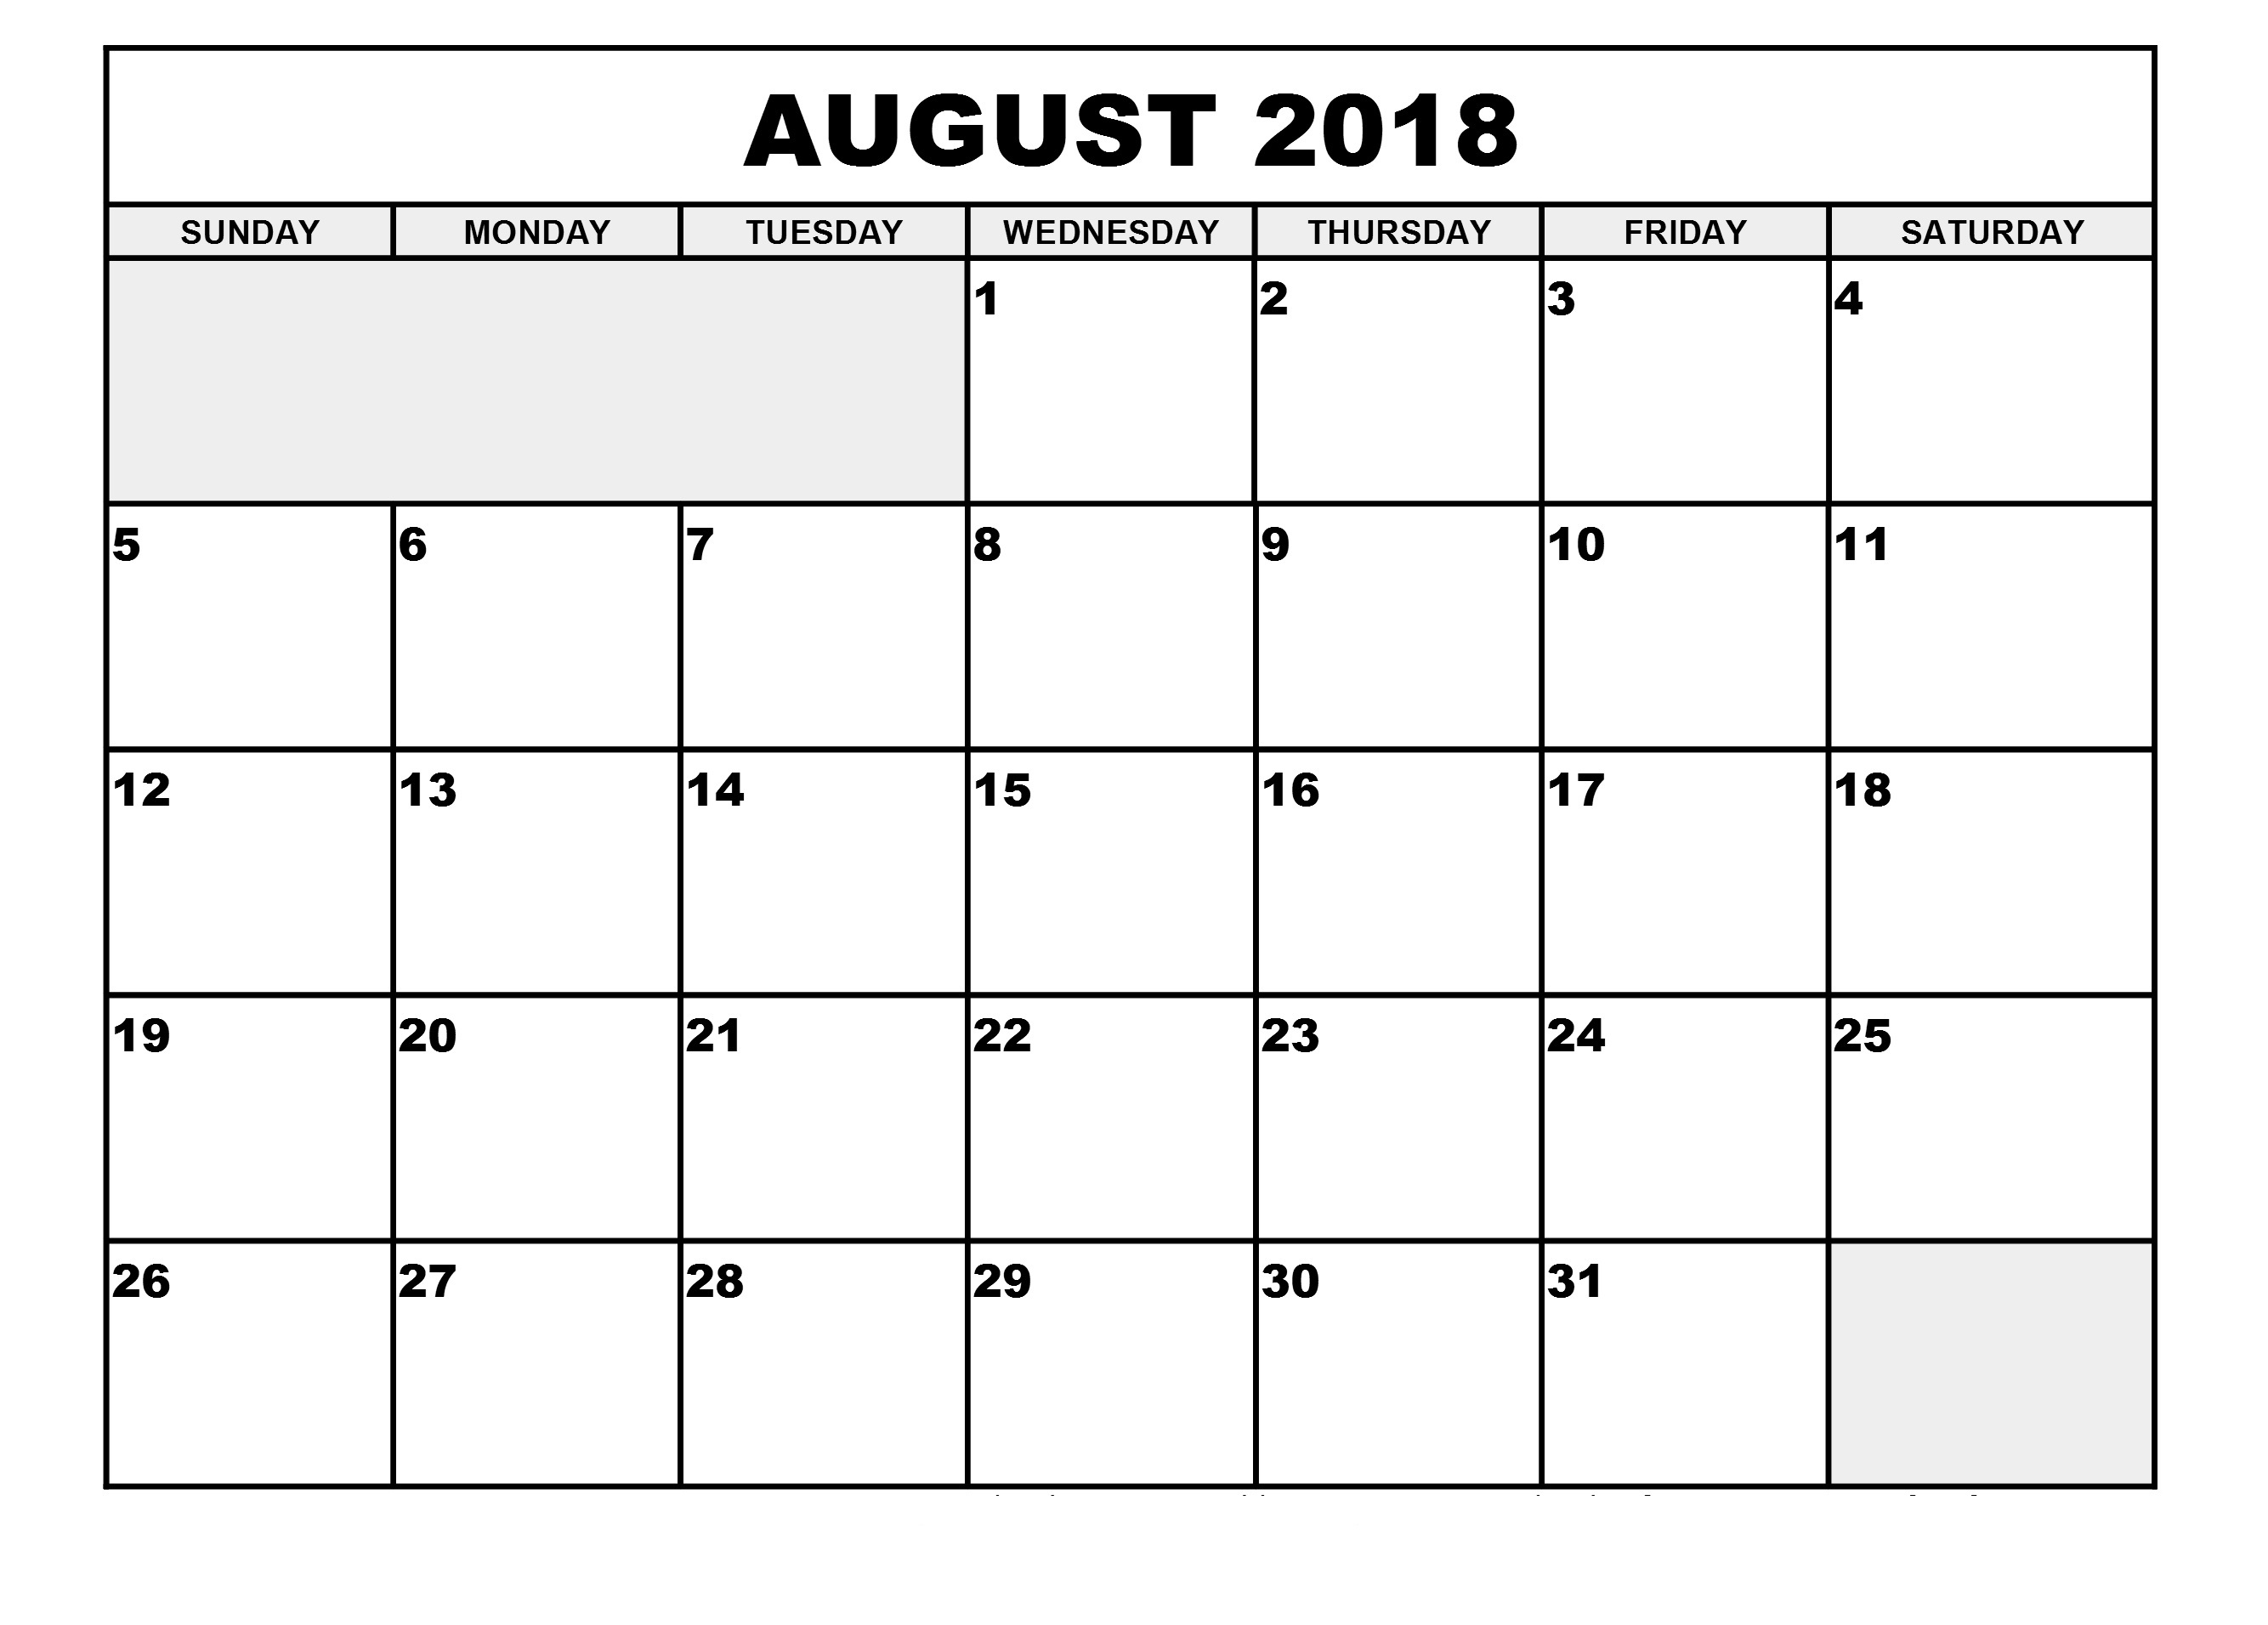 2018 August Weakday Calendar Templates